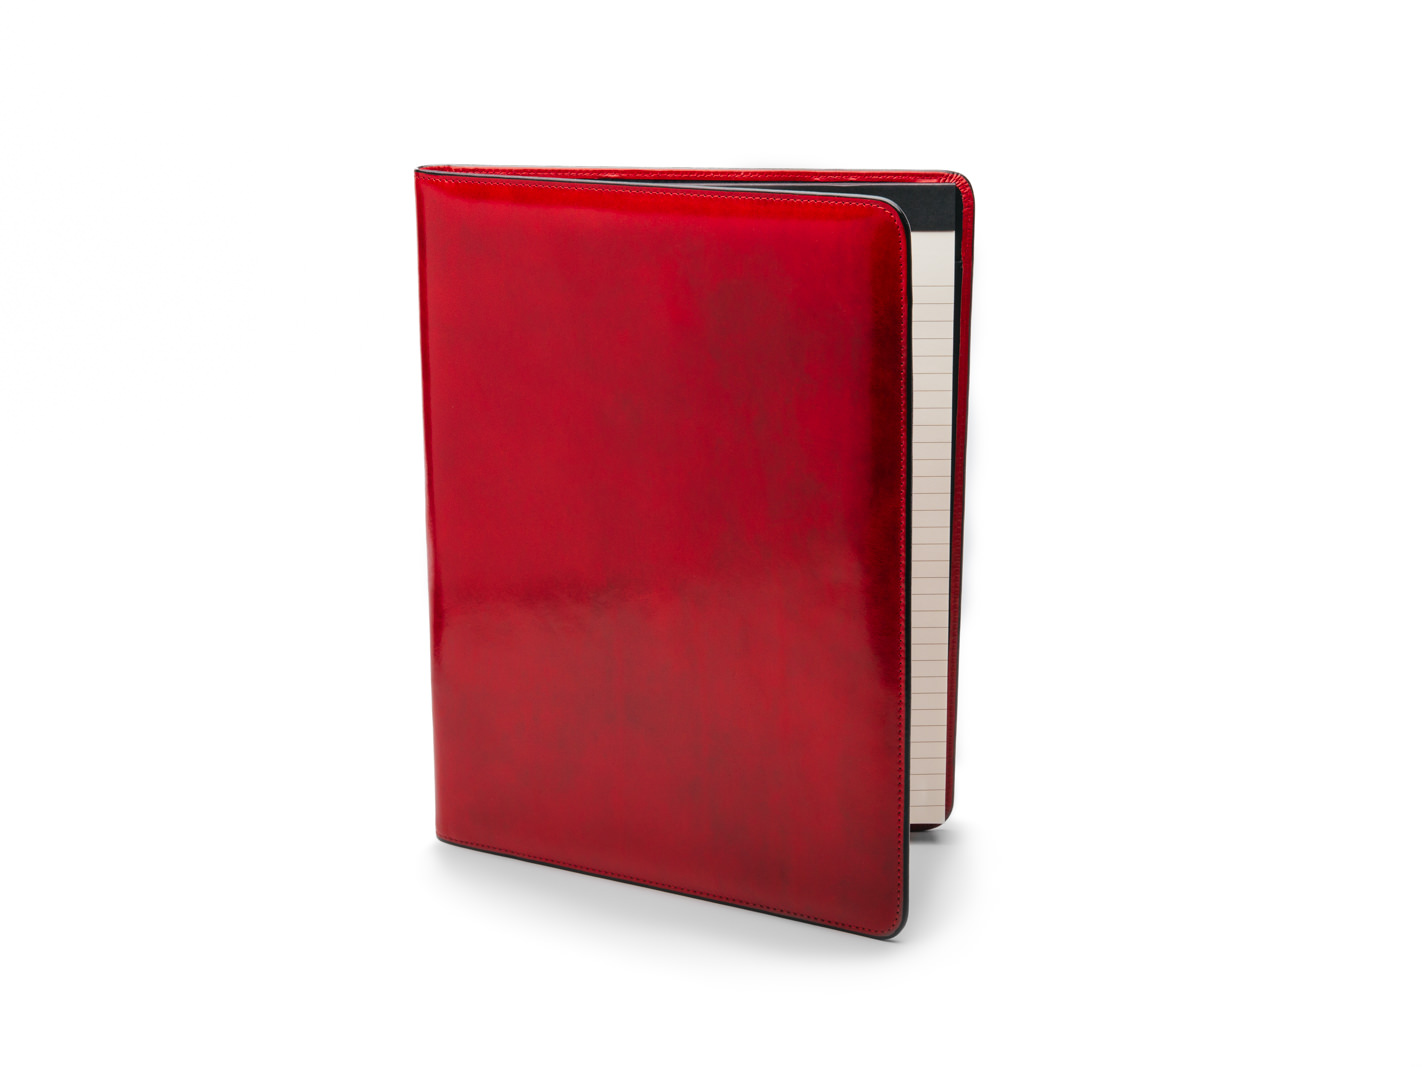 8 1/2 X 11 Writing Pad Cover - Brick Red - Front Closed